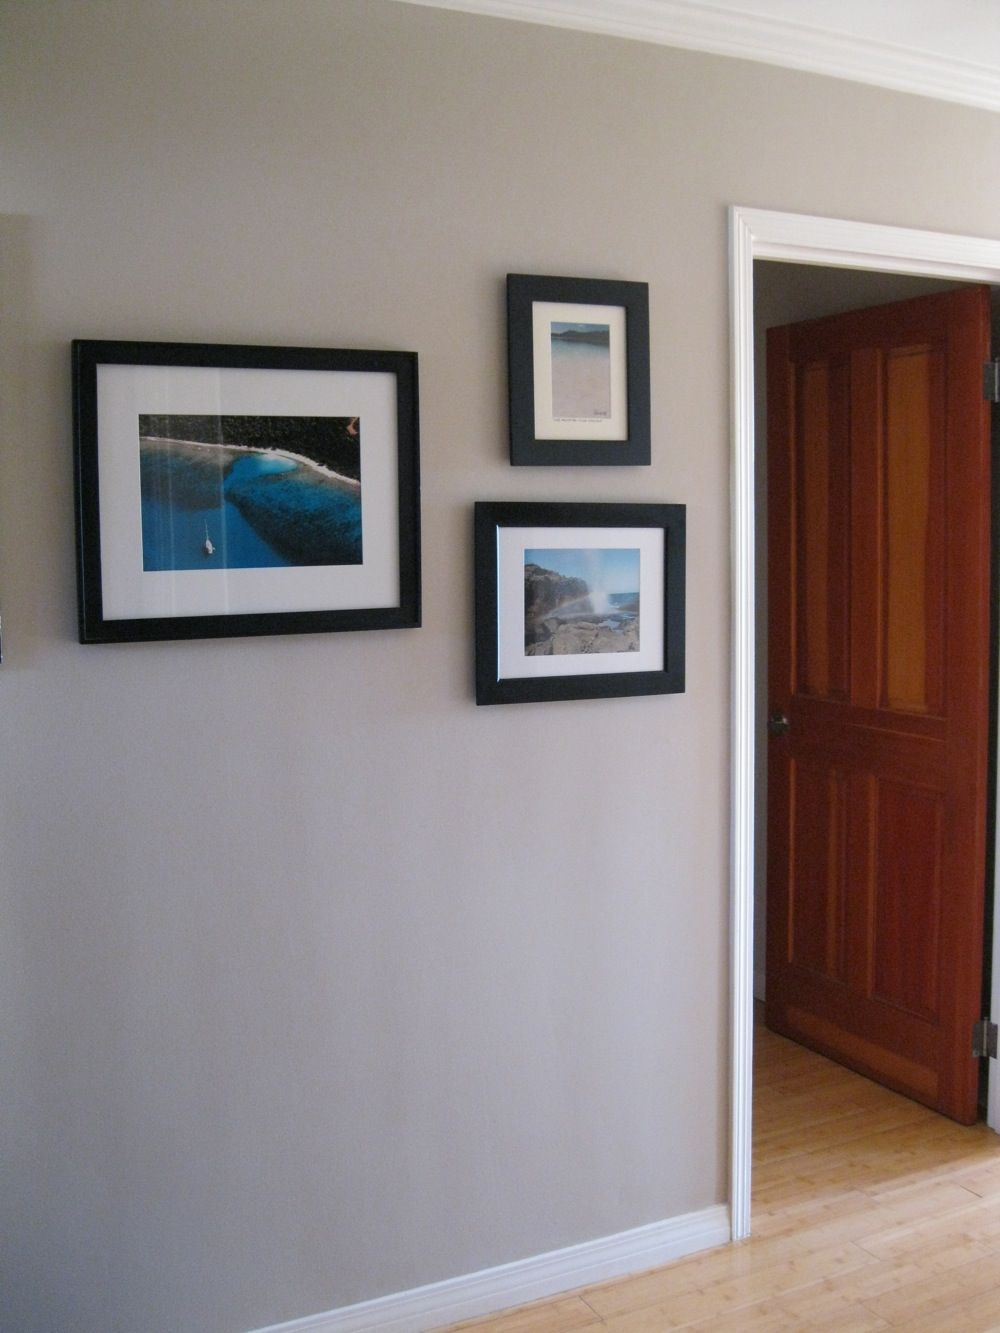 Living room hallway wall color new condo pinterest hallway walls wall colors and for Living room and hallway paint colors